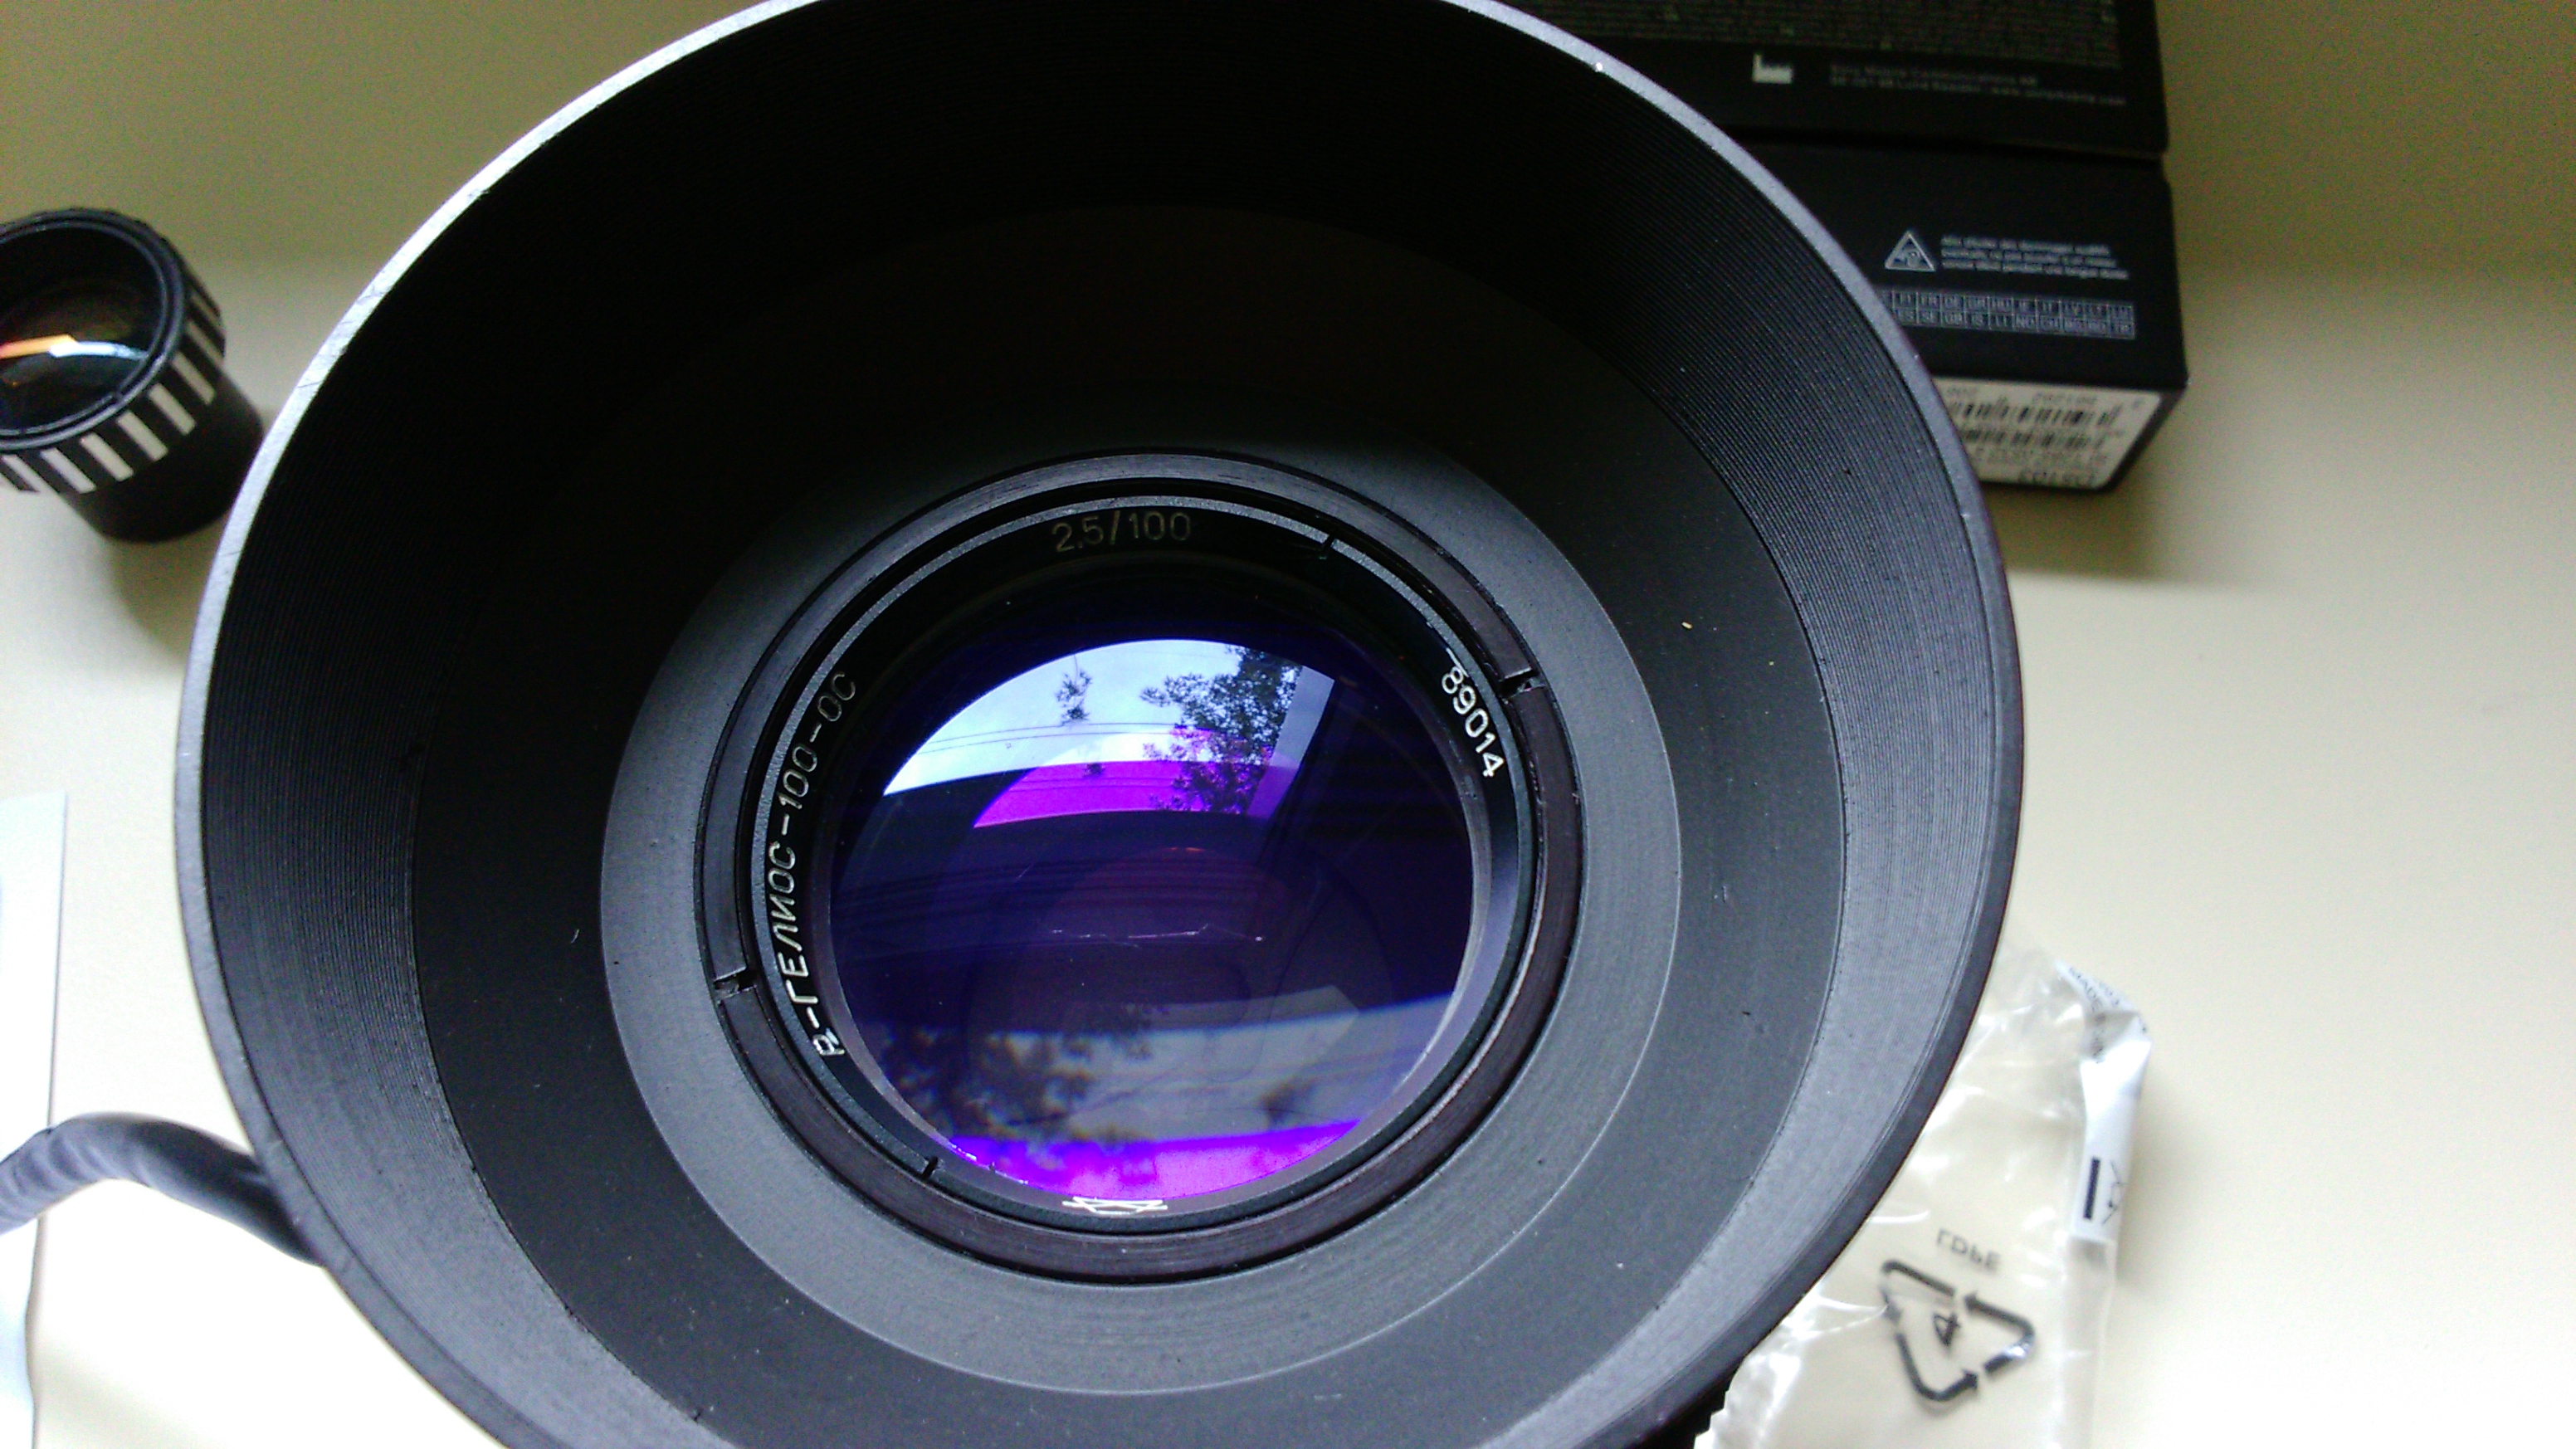 Complete list of Helios lenses - getting closer